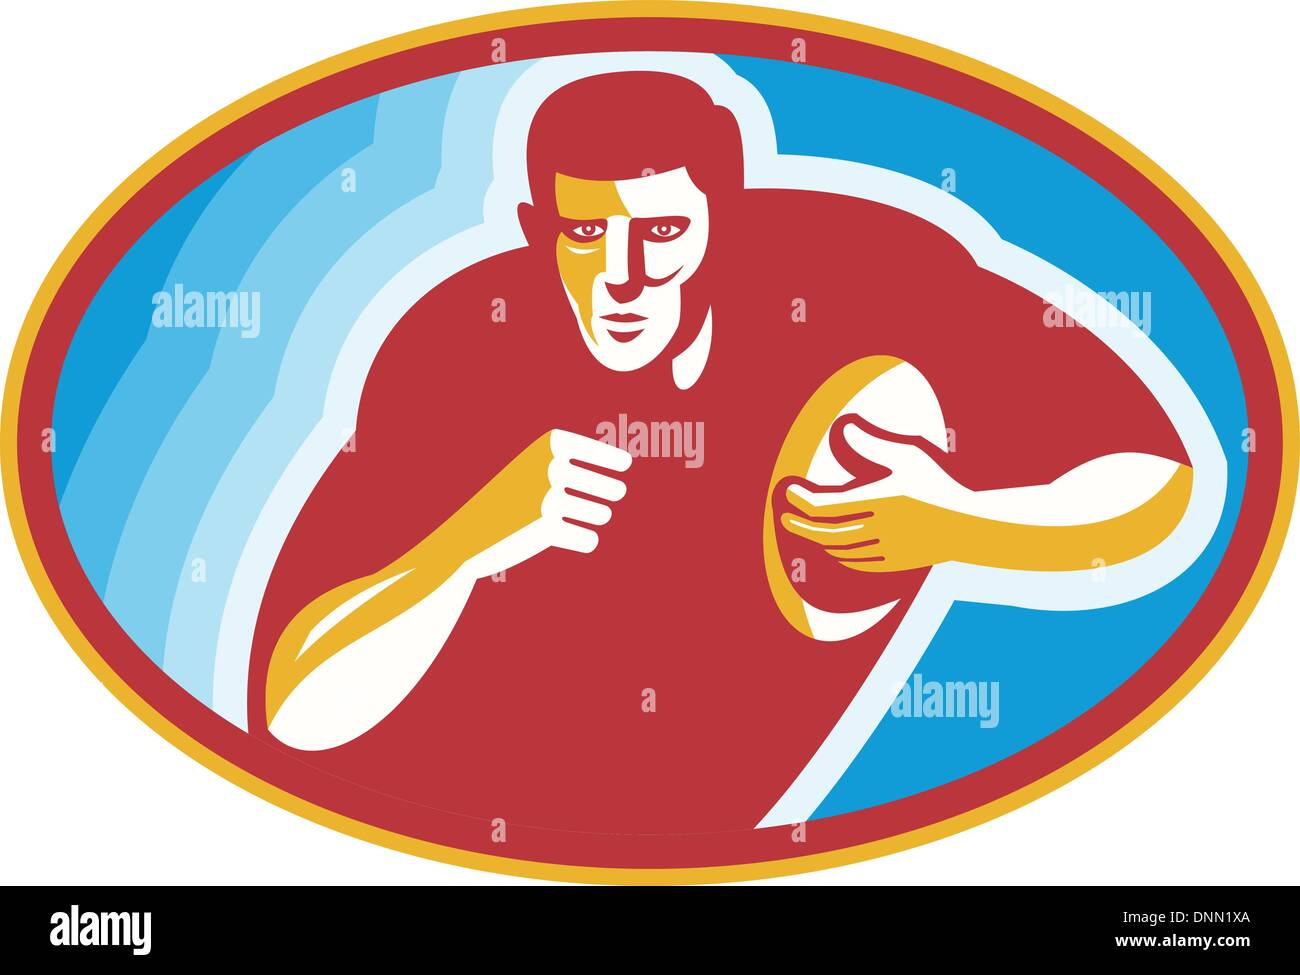 Illustration of a rugby player running with ball set inside ellipse done in retro style. Stock Vector